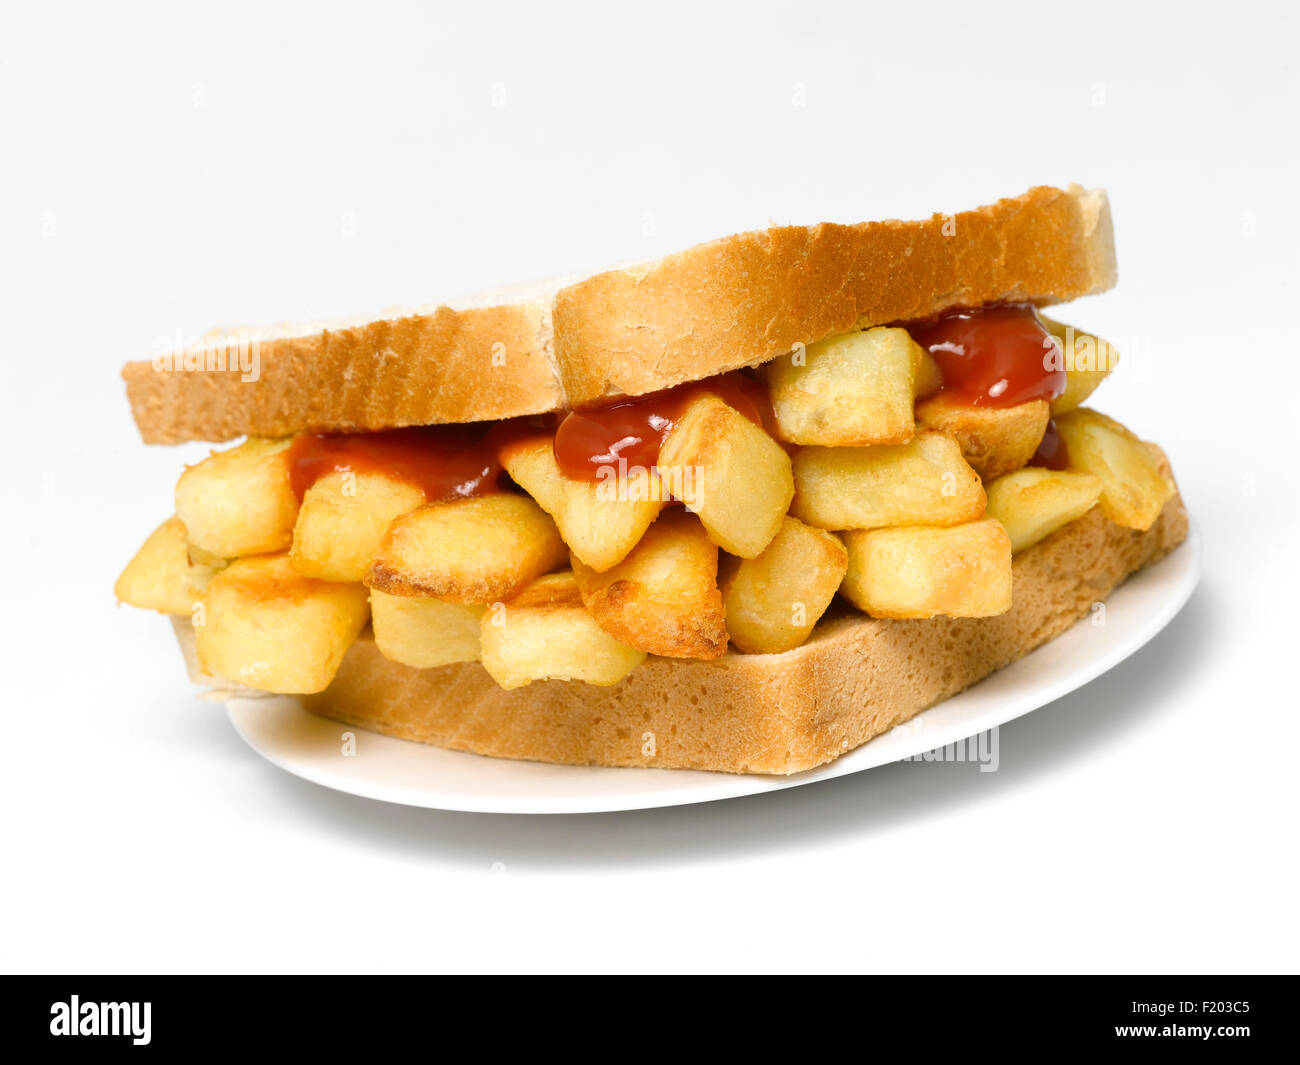 Chip Sandwich on a plate isolated - Stock Image